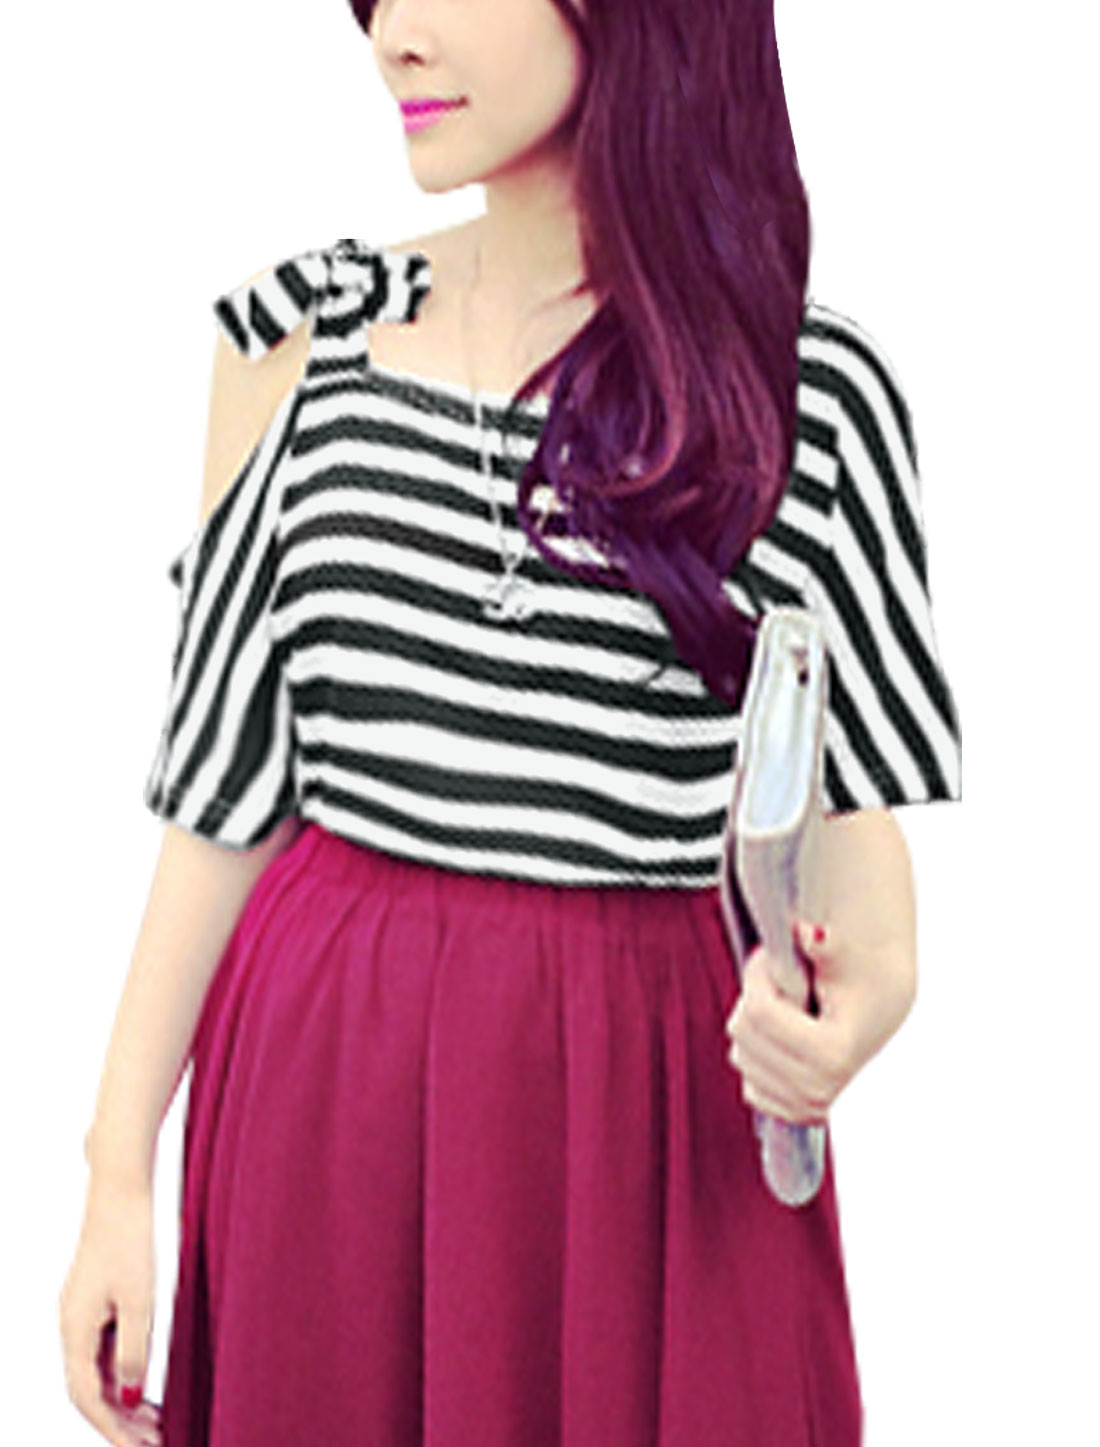 Lady Round Neck Half Sleeve Self-Tie Bowknot Stripes T-Shirt Black White S